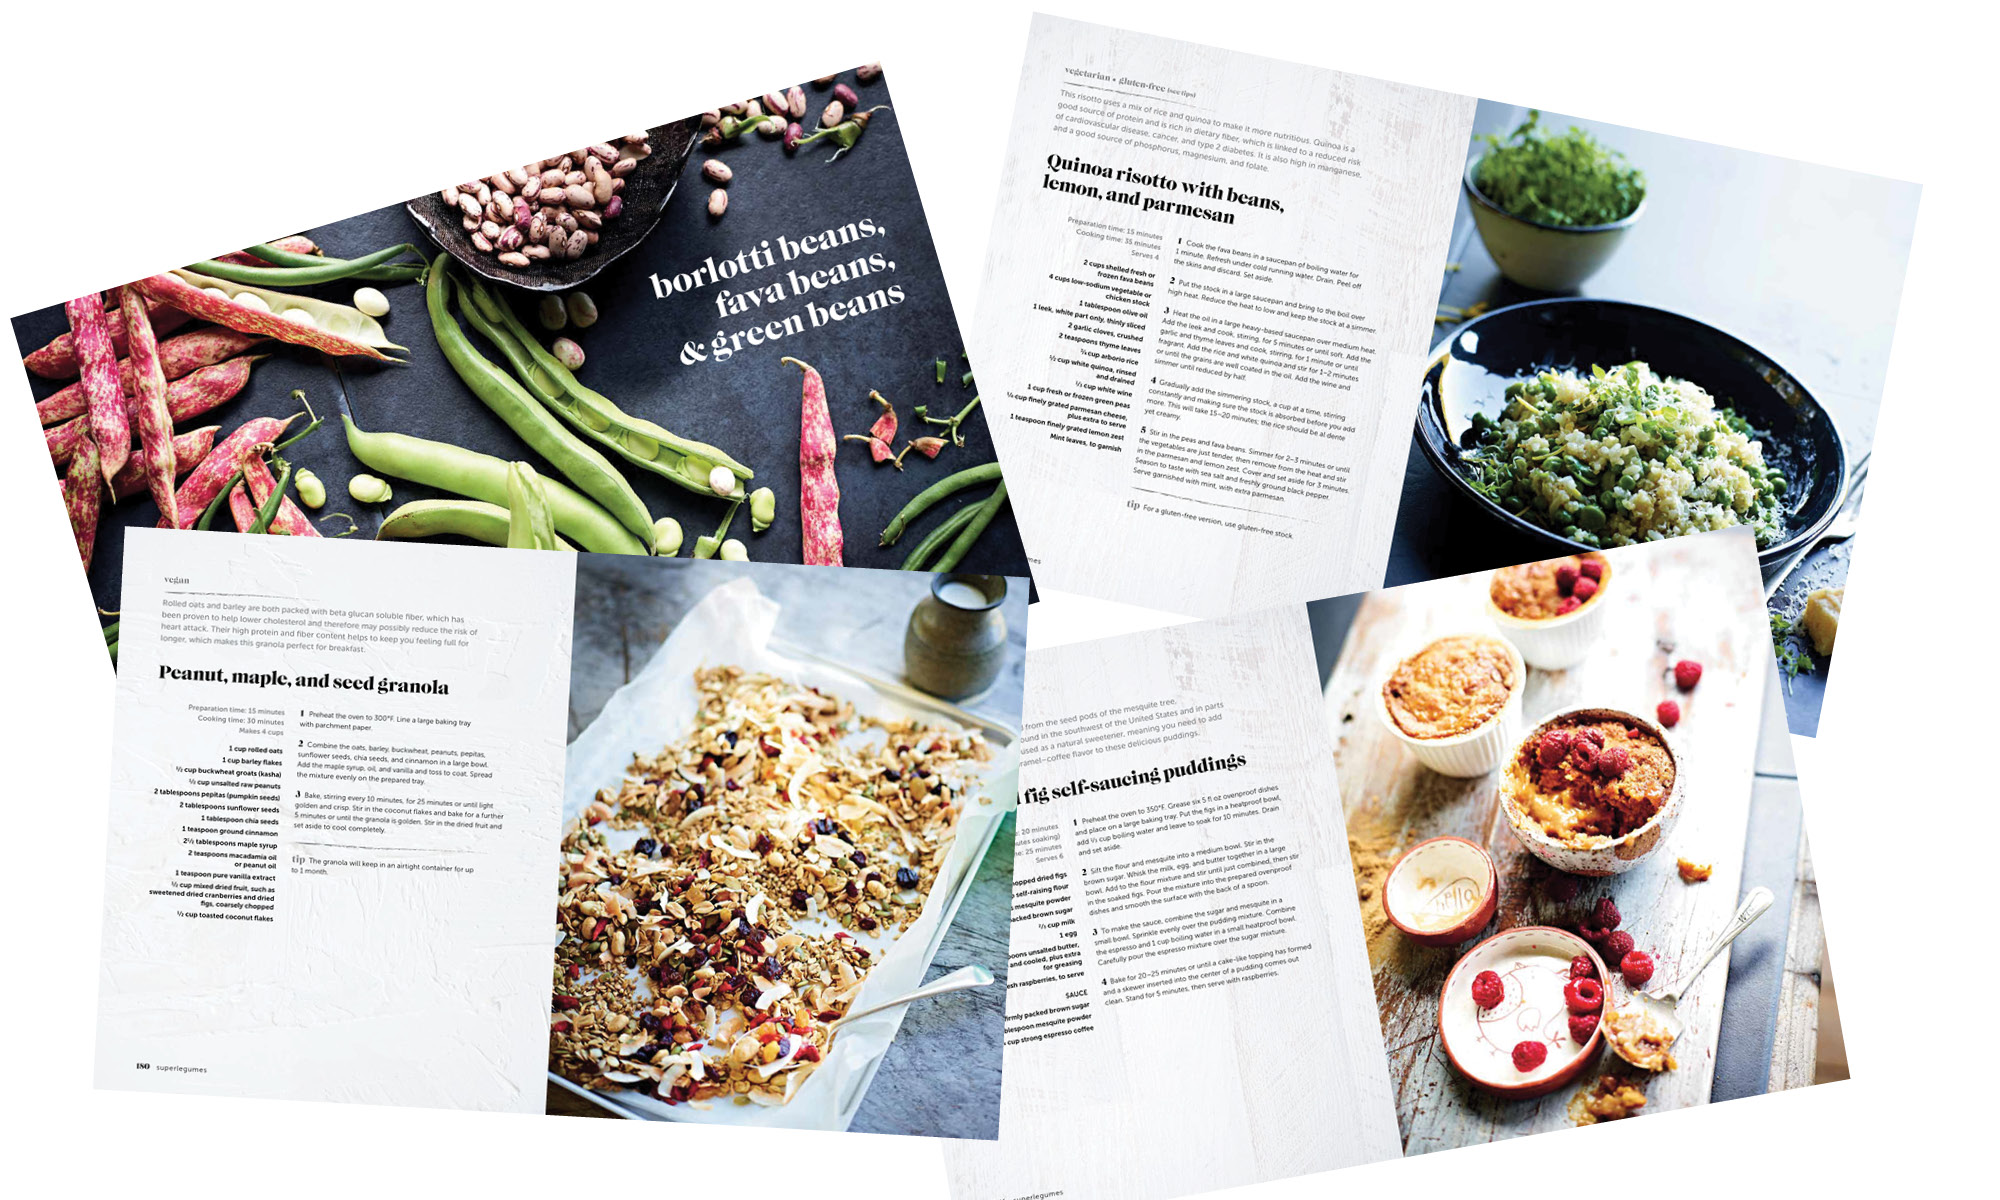 Superlegumes cookbook by Chrissy Freer